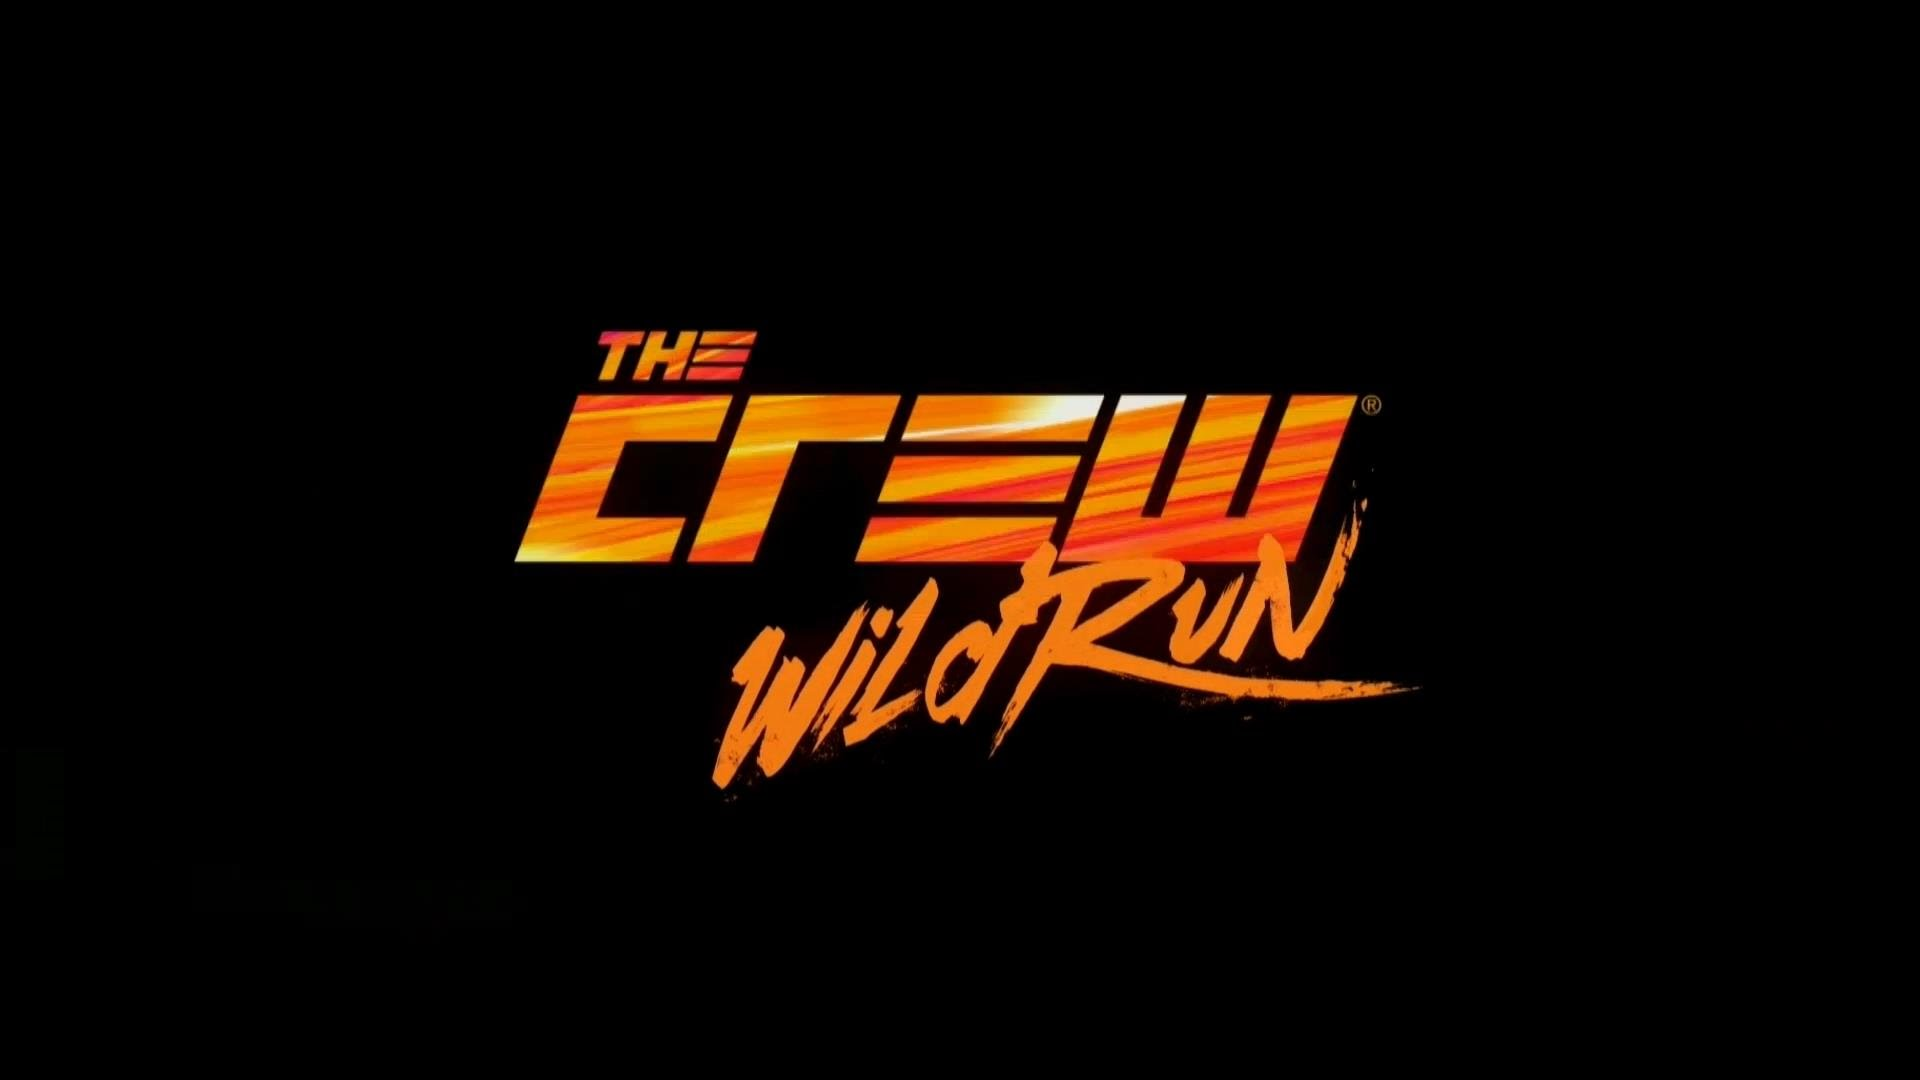 The crew wild run closed beta key